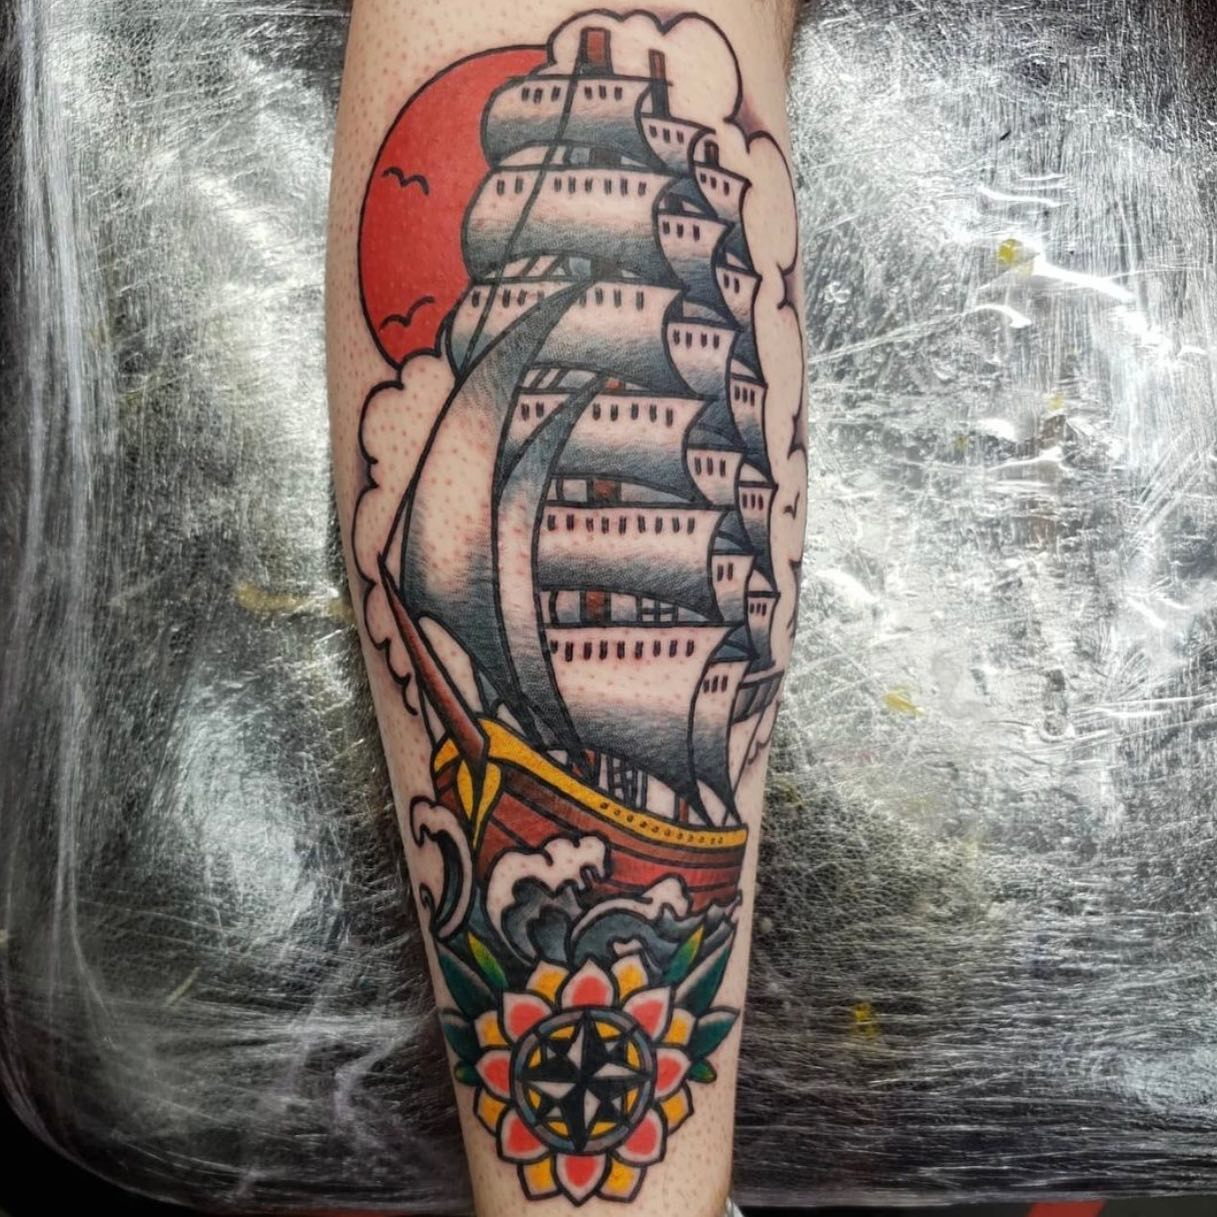 tattoosbyalanross sailing straight into your dms with this beauty from the other day ⛵️For all enquiries for Alan, please contact reception or him directly 💚 - -           totaltattoo